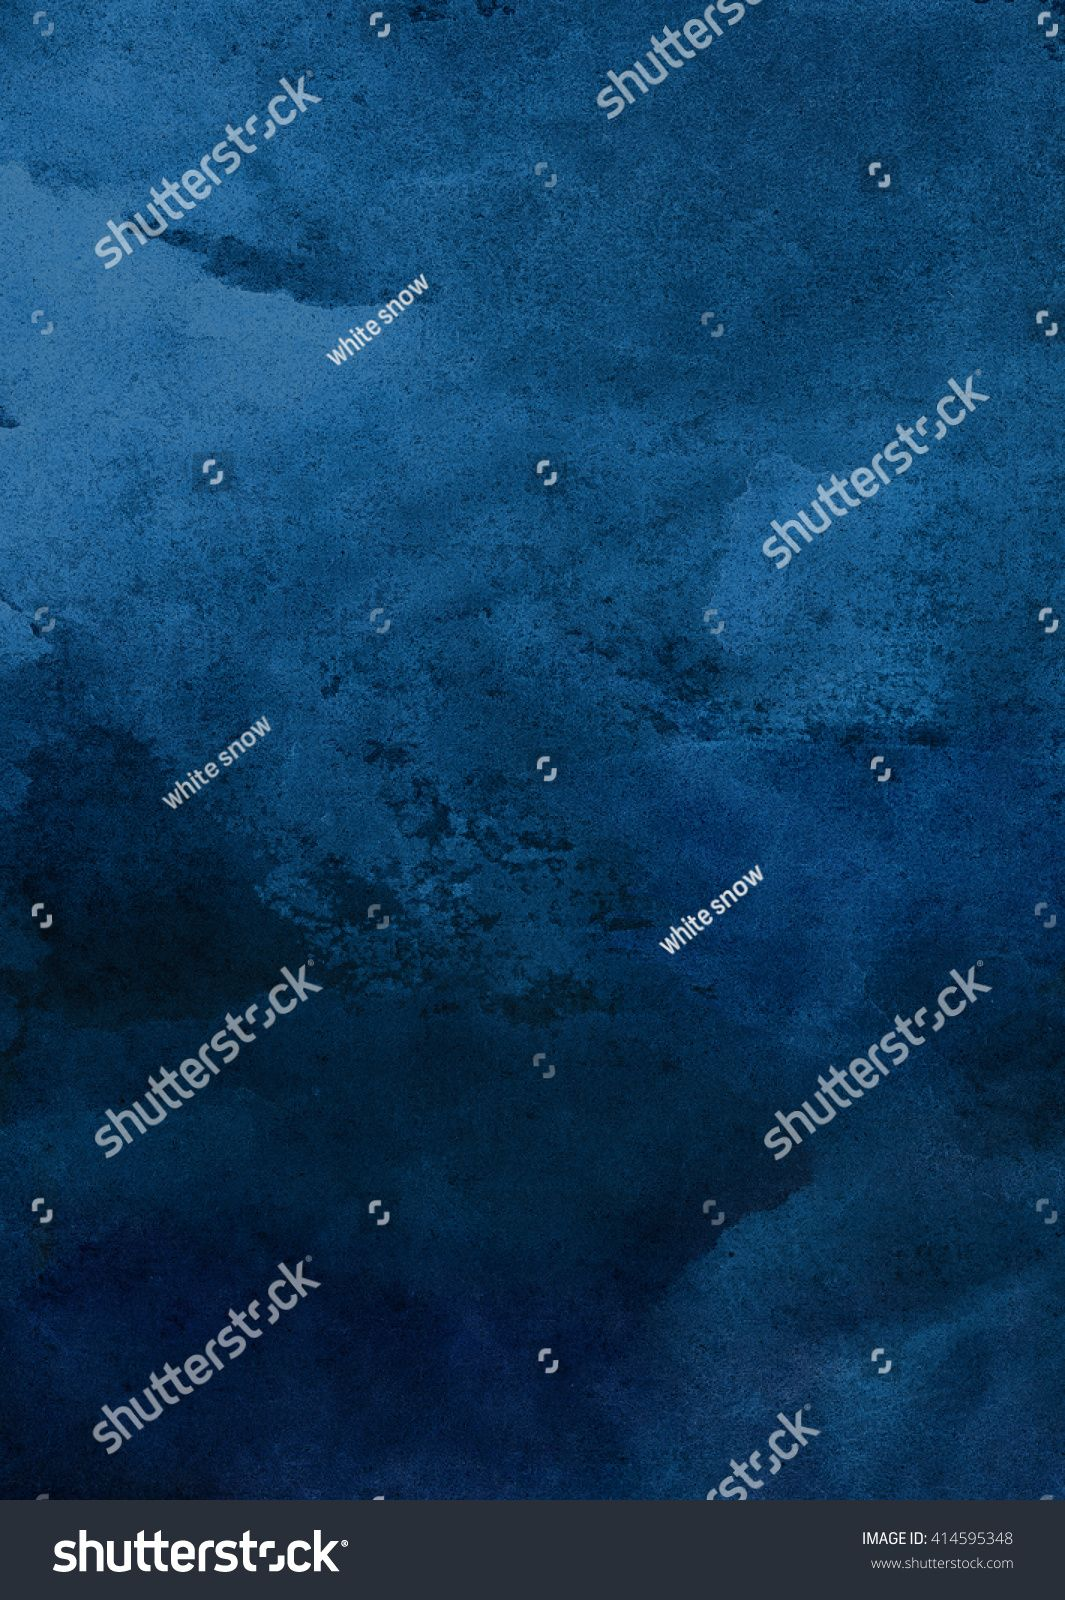 Dark Blue Watercolor Background Royalty Free Image Photo